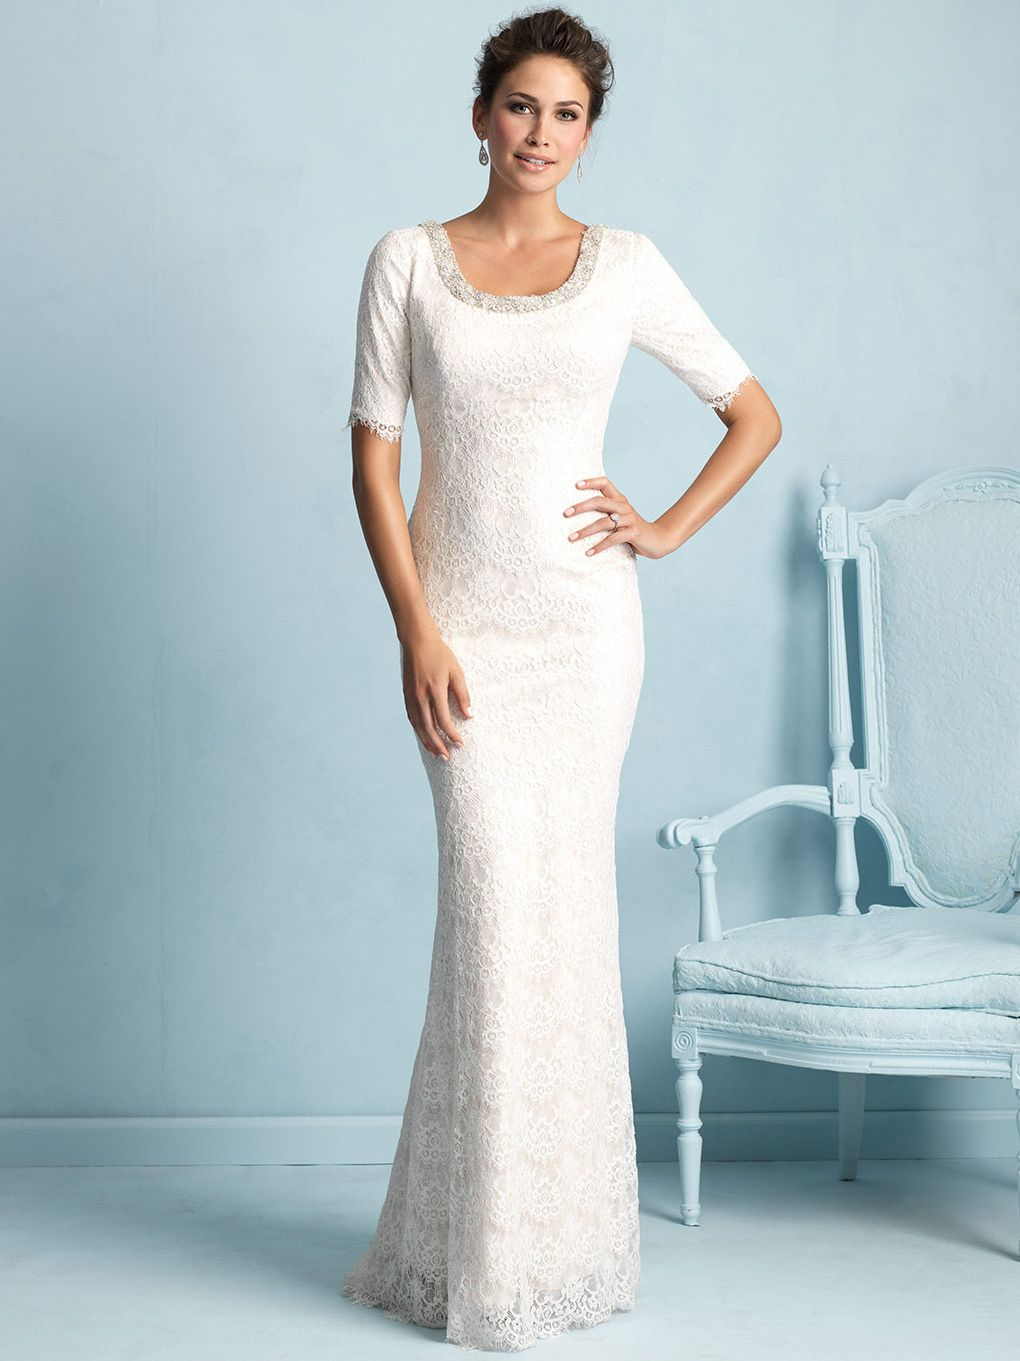 77+ Wedding Dresses for Second Marriage - Dresses for Wedding Party ...